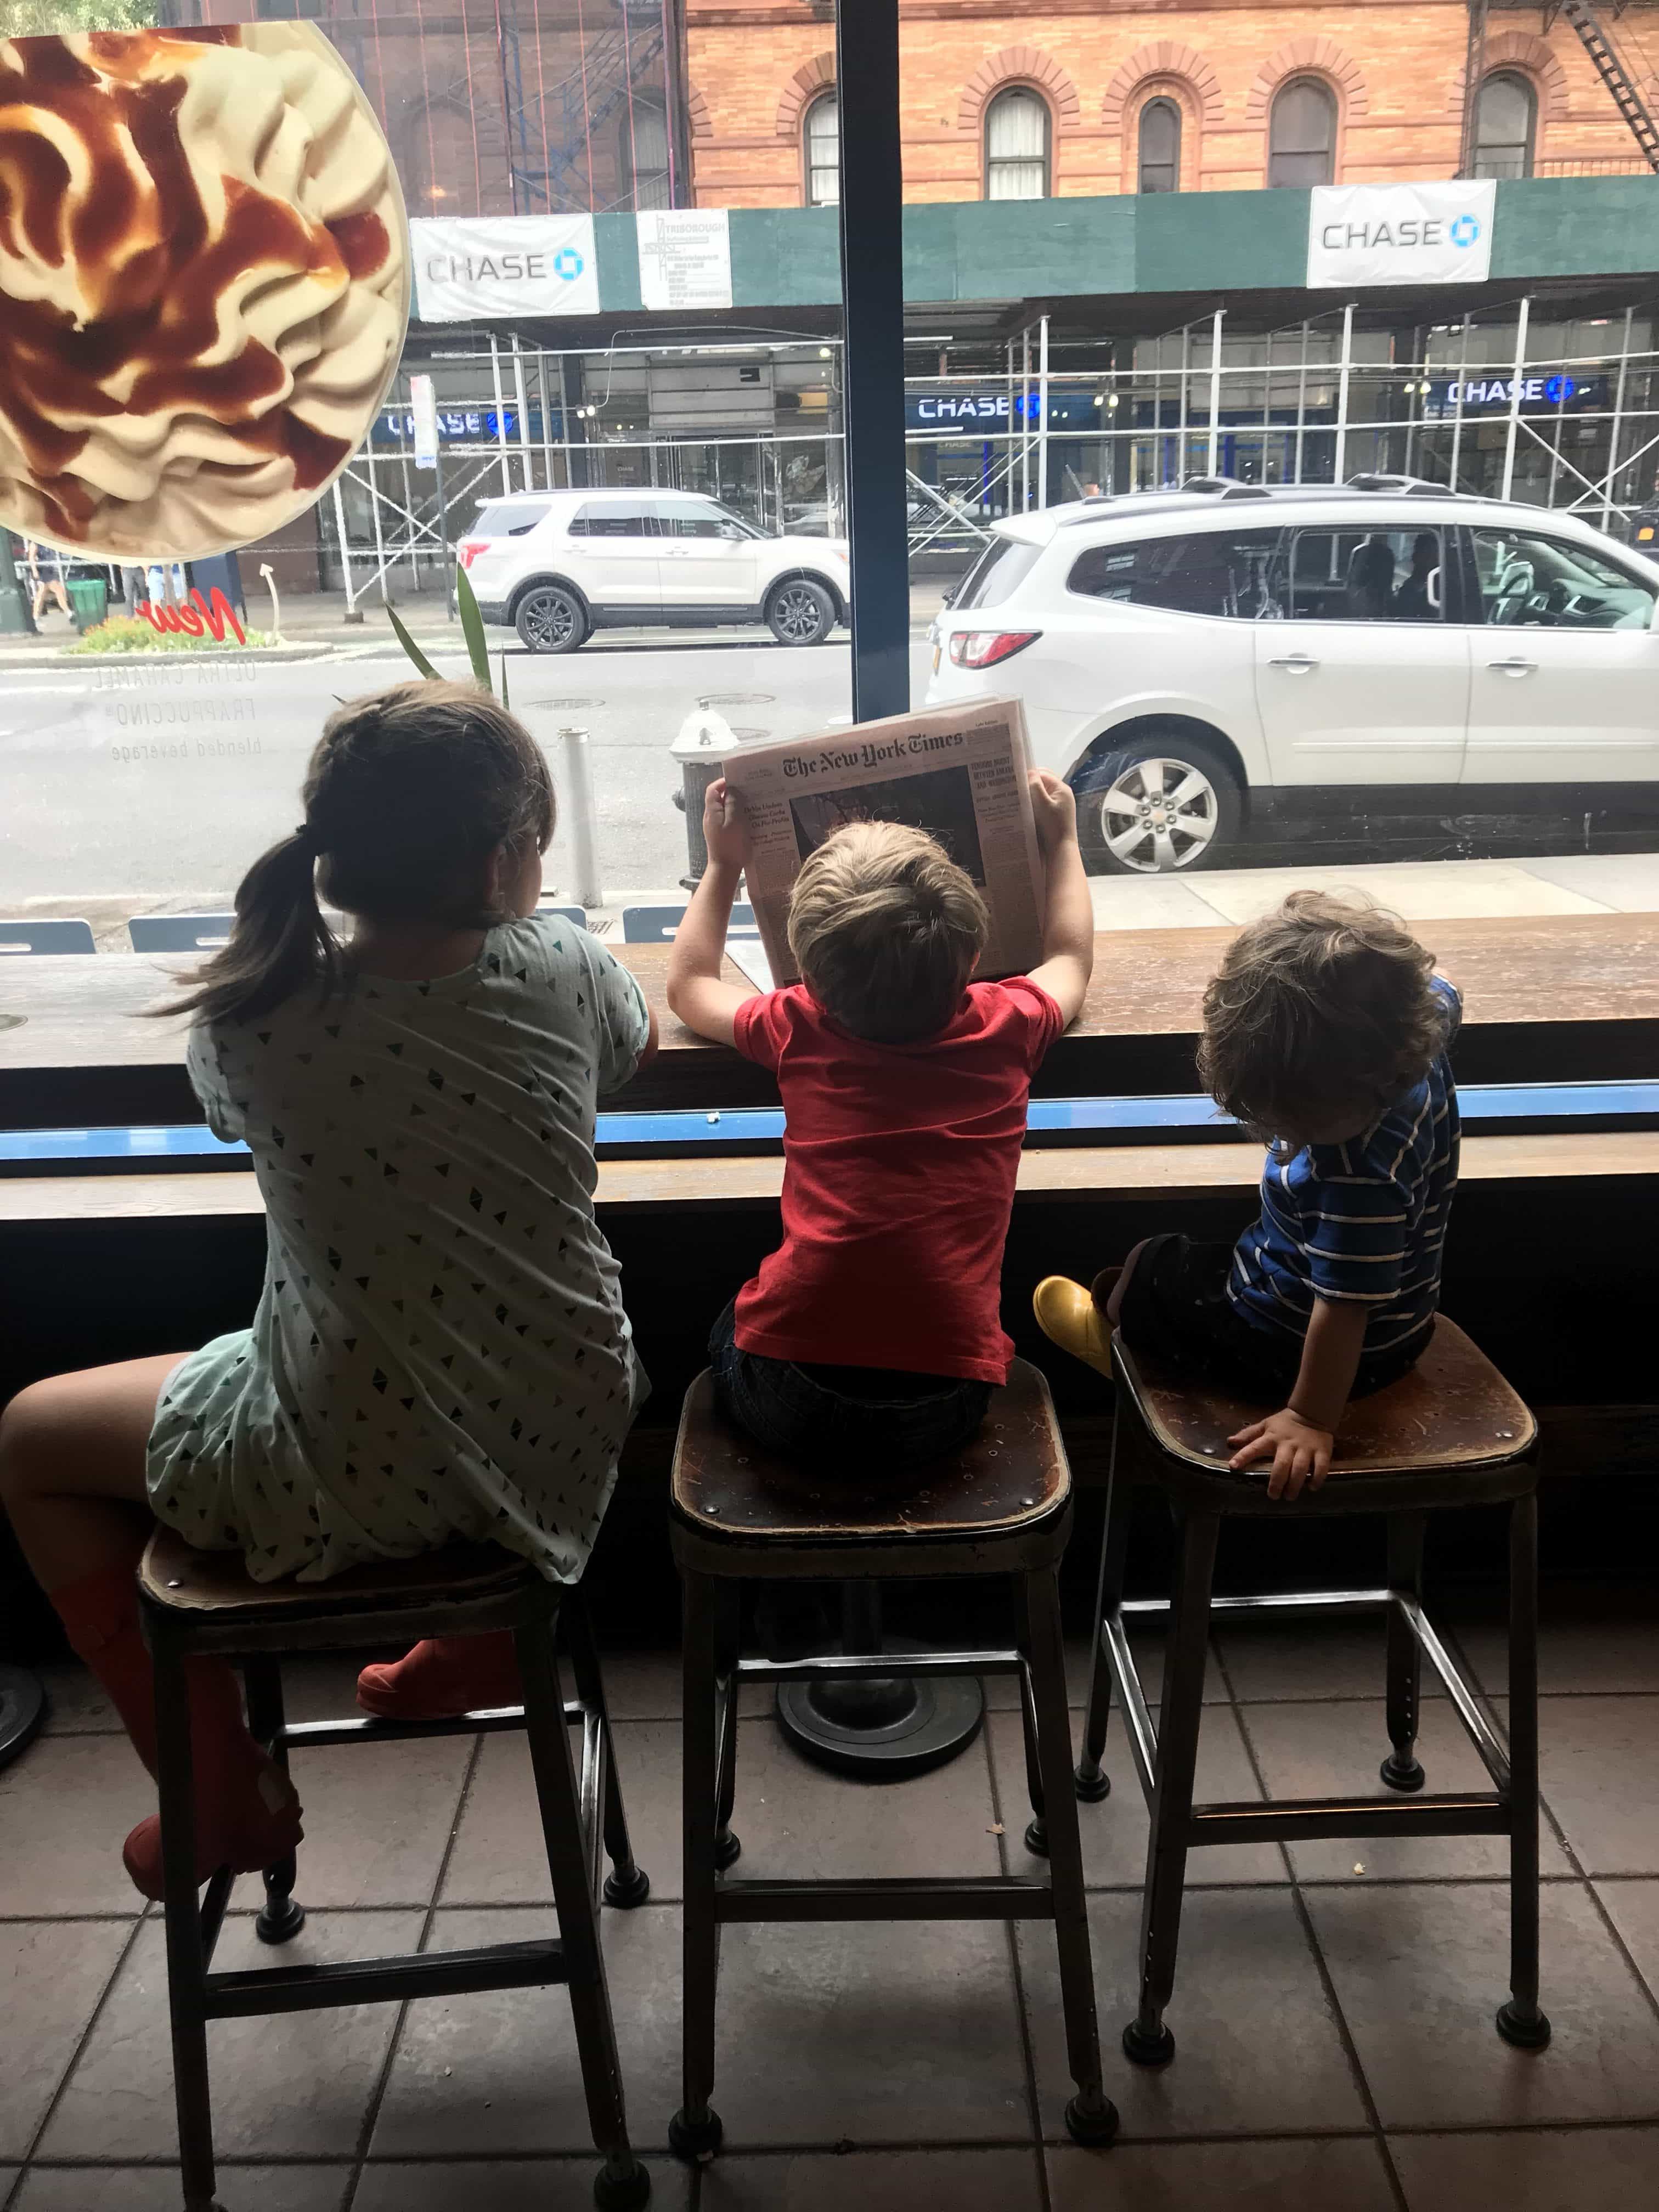 Kids sitting at a bar in front of a window